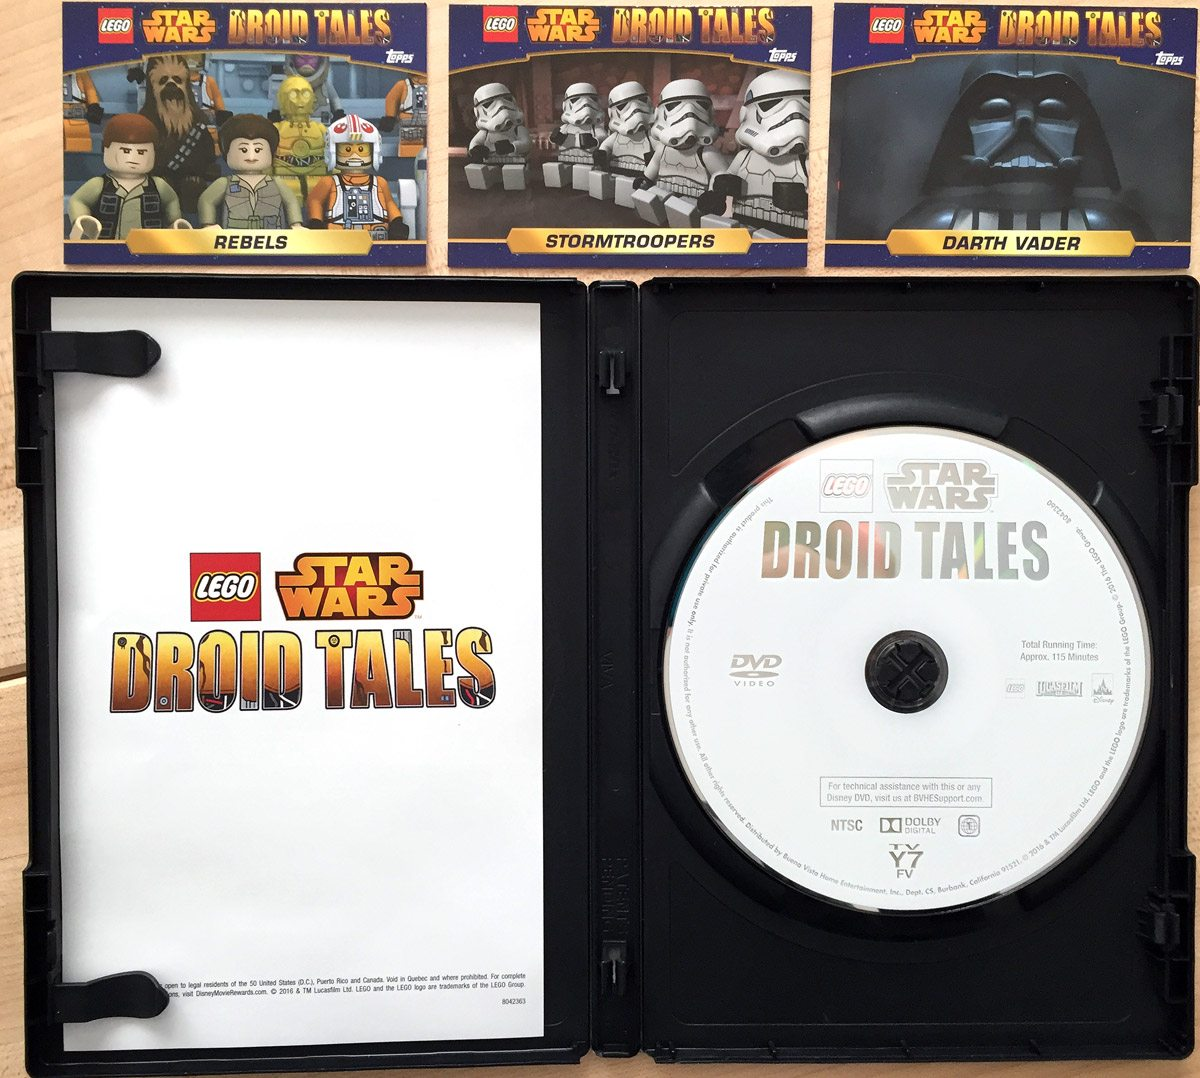 LegoStarWarsDroidTales-Contents